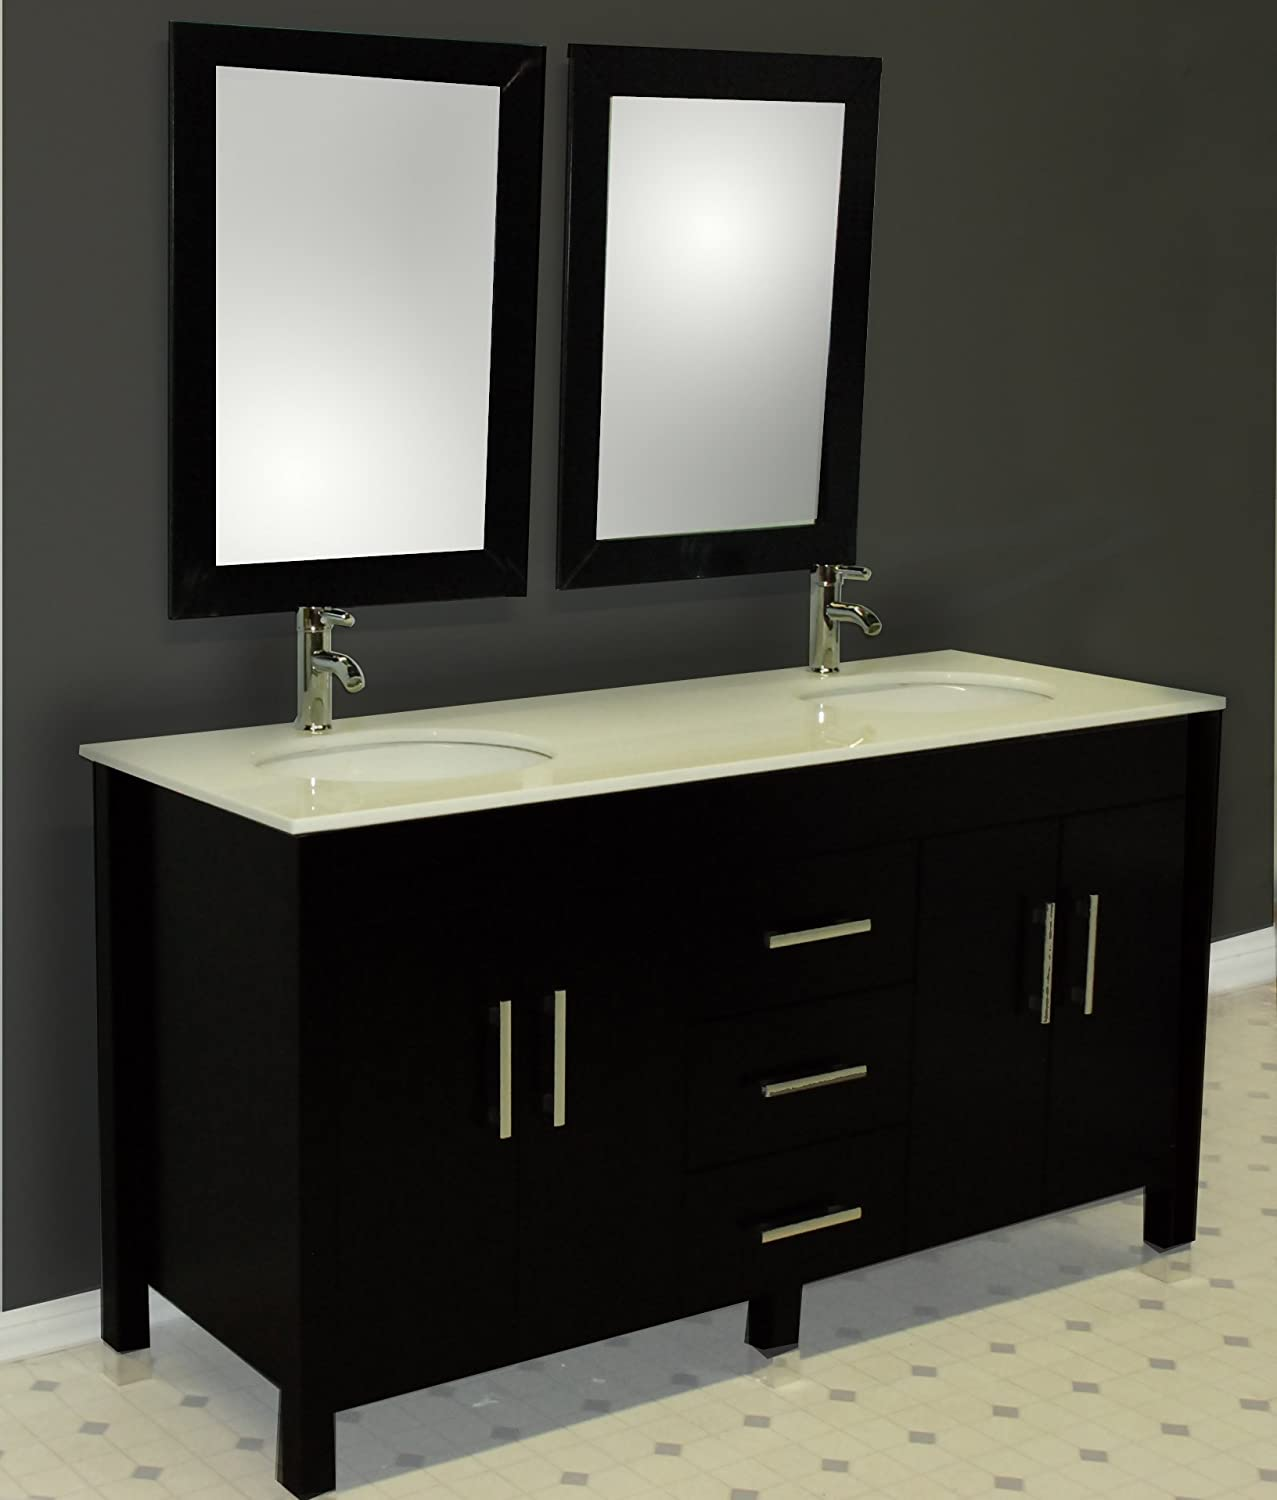 Solid wood bathroom cabinets - Amazon Com 62 Inch Espresso Solid Wood Double Bathroom Vanity Set Charles Brushed Nickel Faucets Home Kitchen